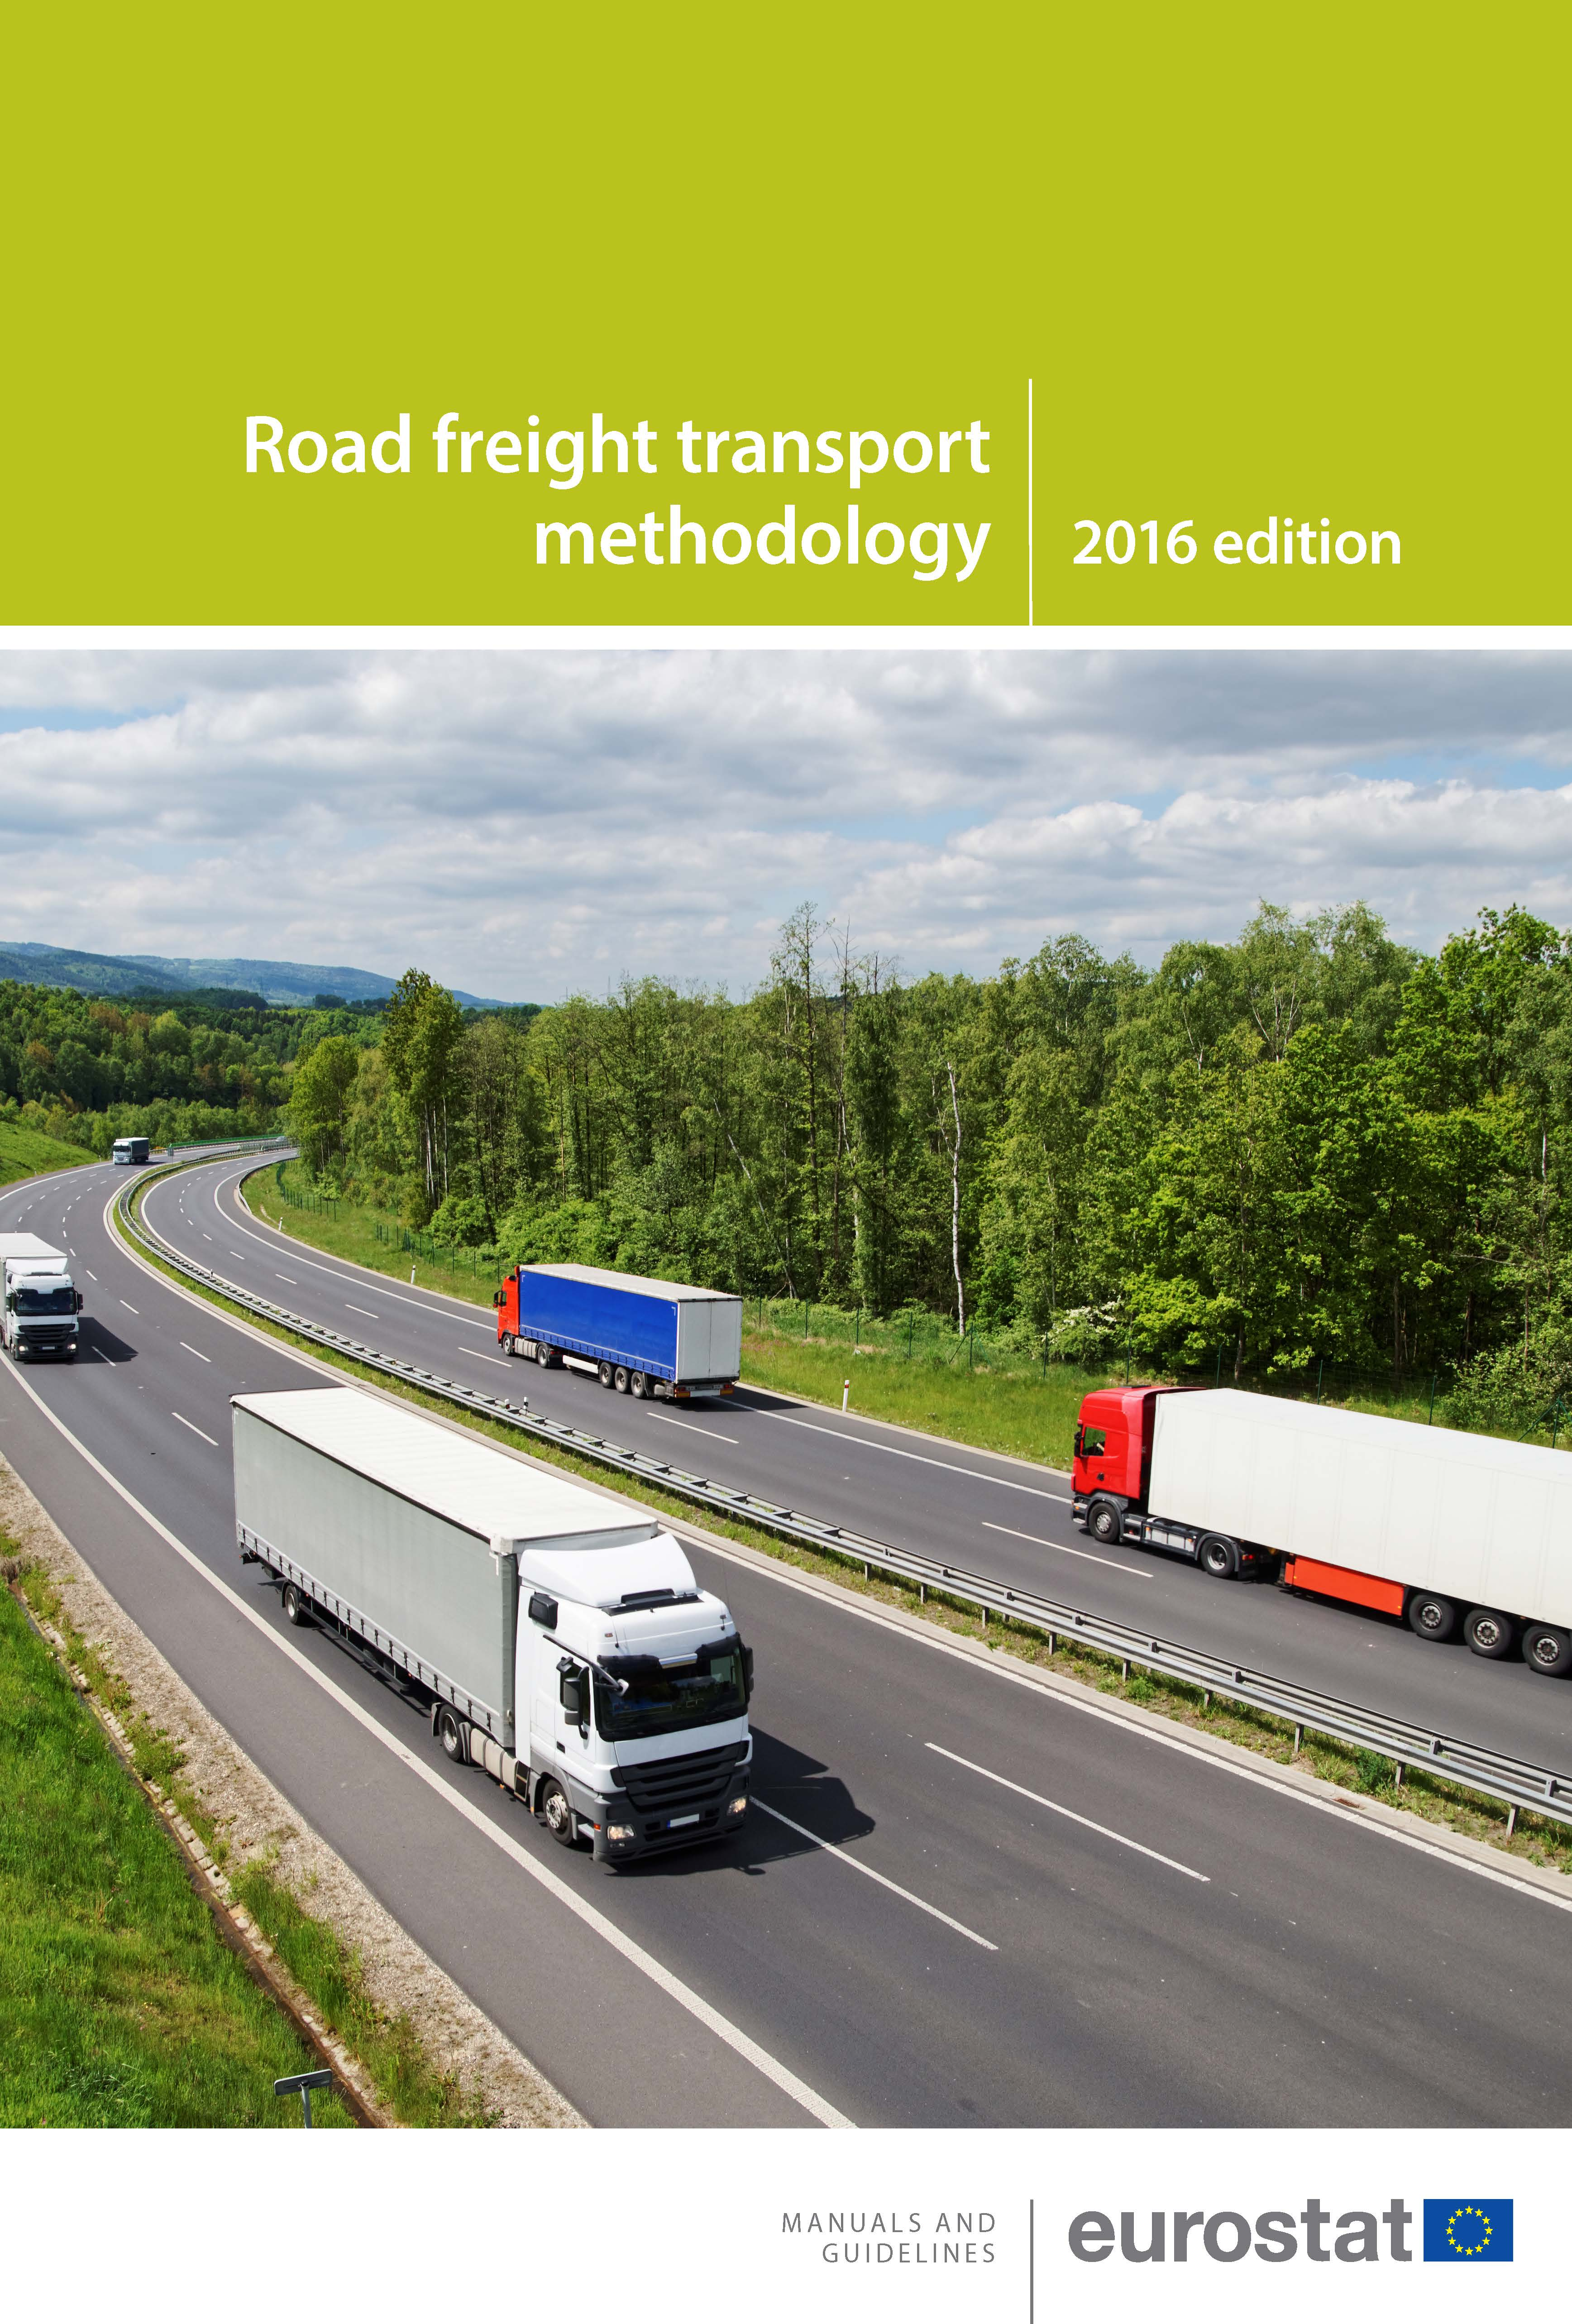 Road freight transport methodology — 2016 edition (Revised edition, August 2017)